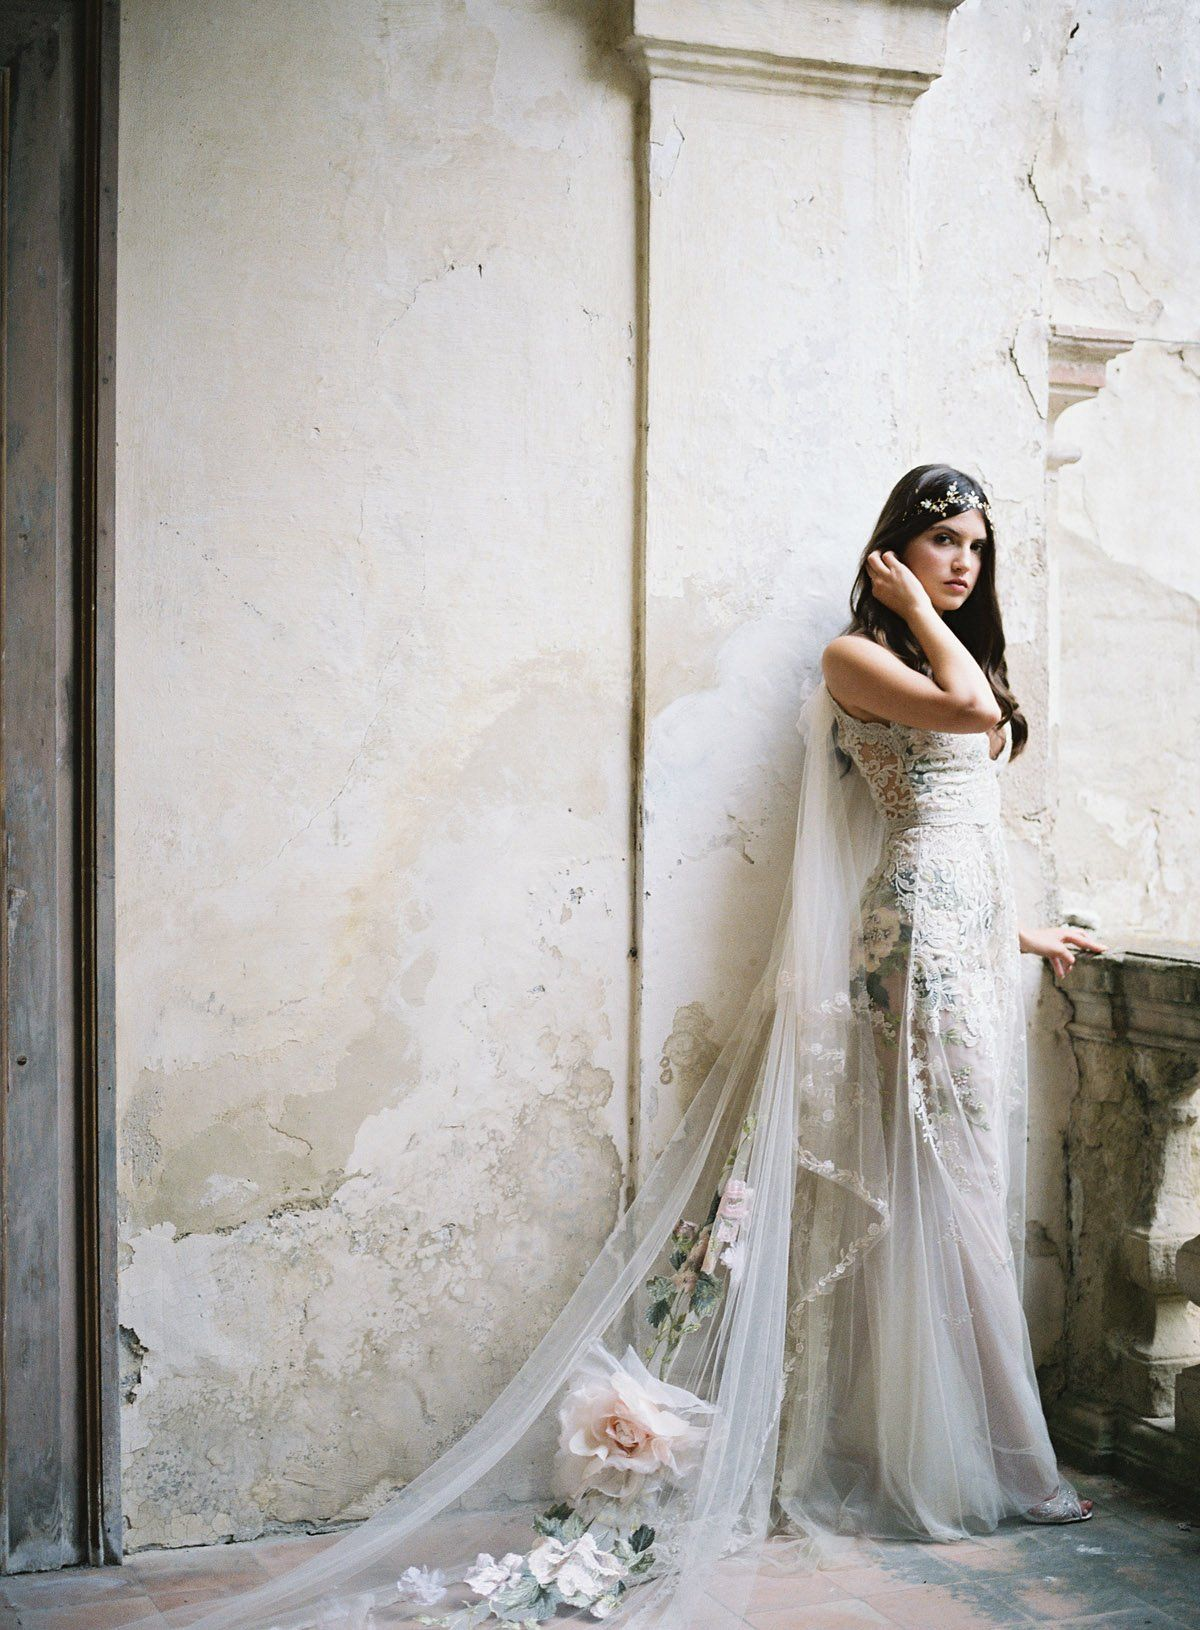 Claire pettibone gypsy rose couture wedding gown dream wedding